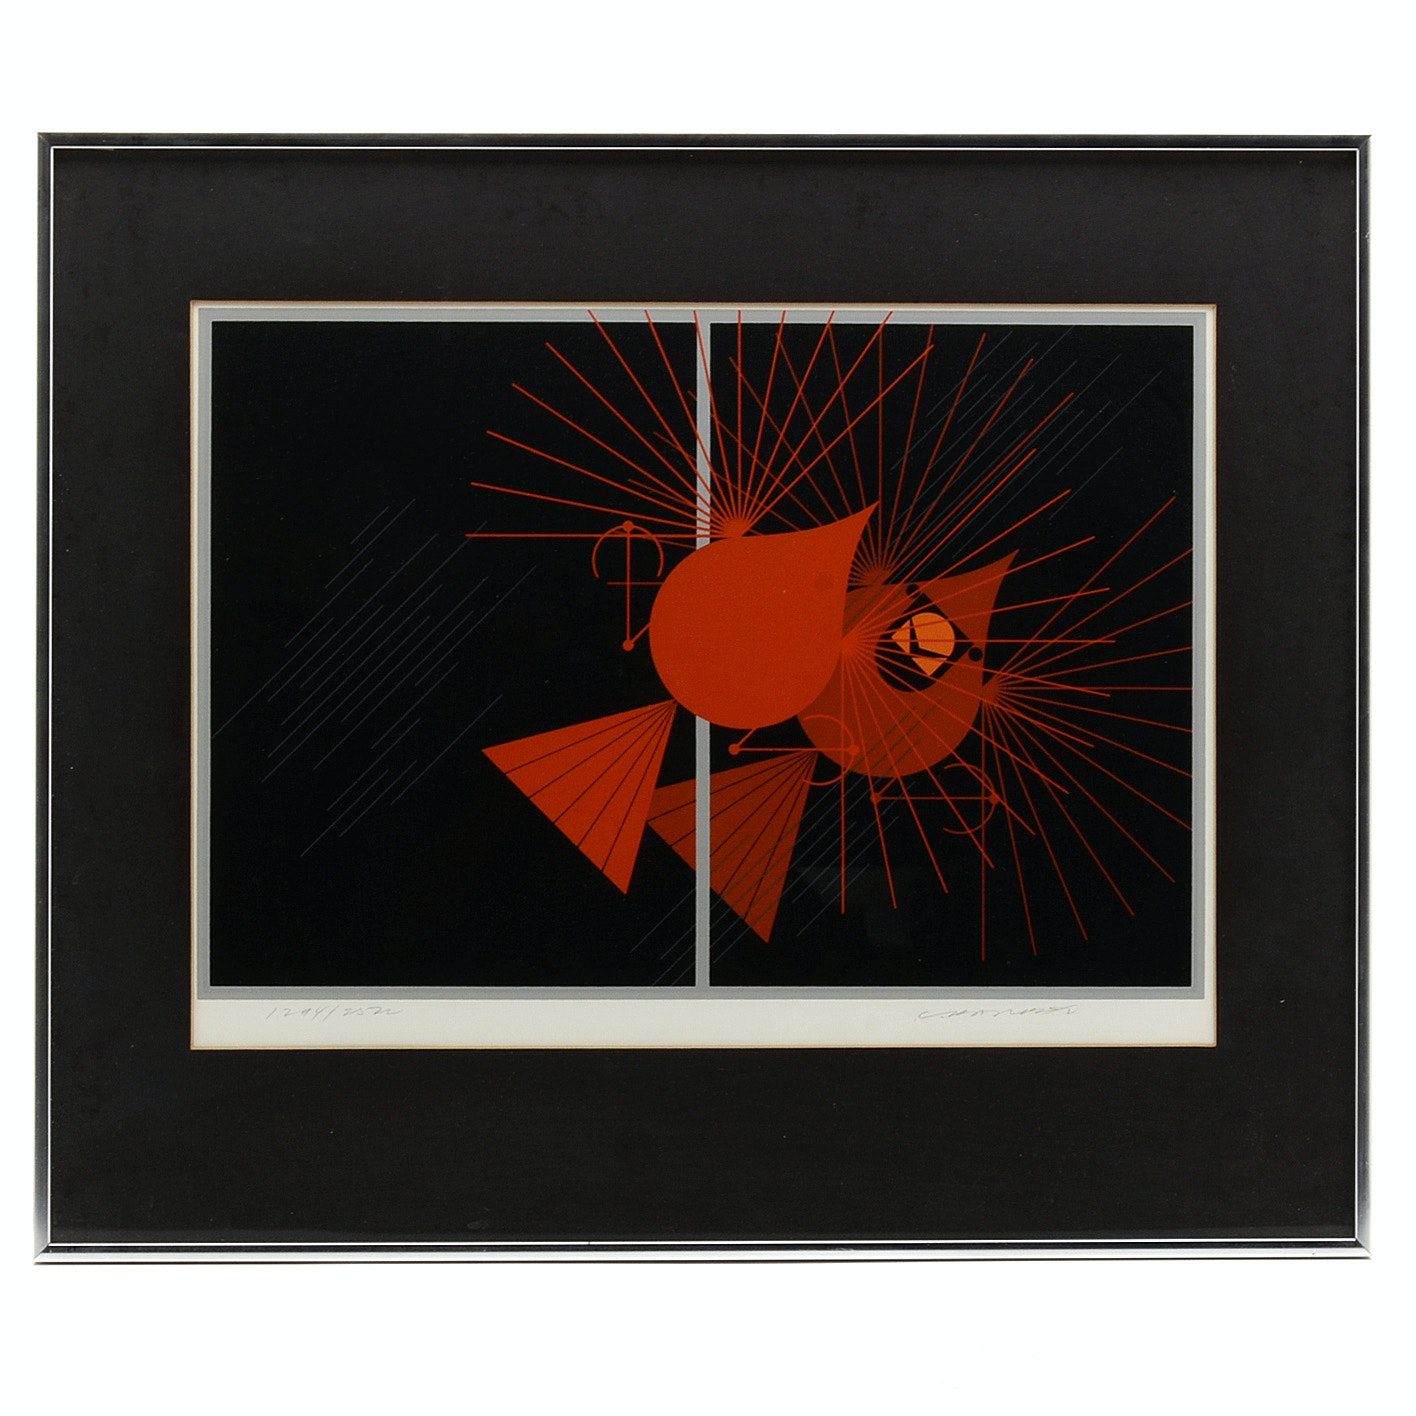 Charley Harper Signed Limited Edition Serigraph